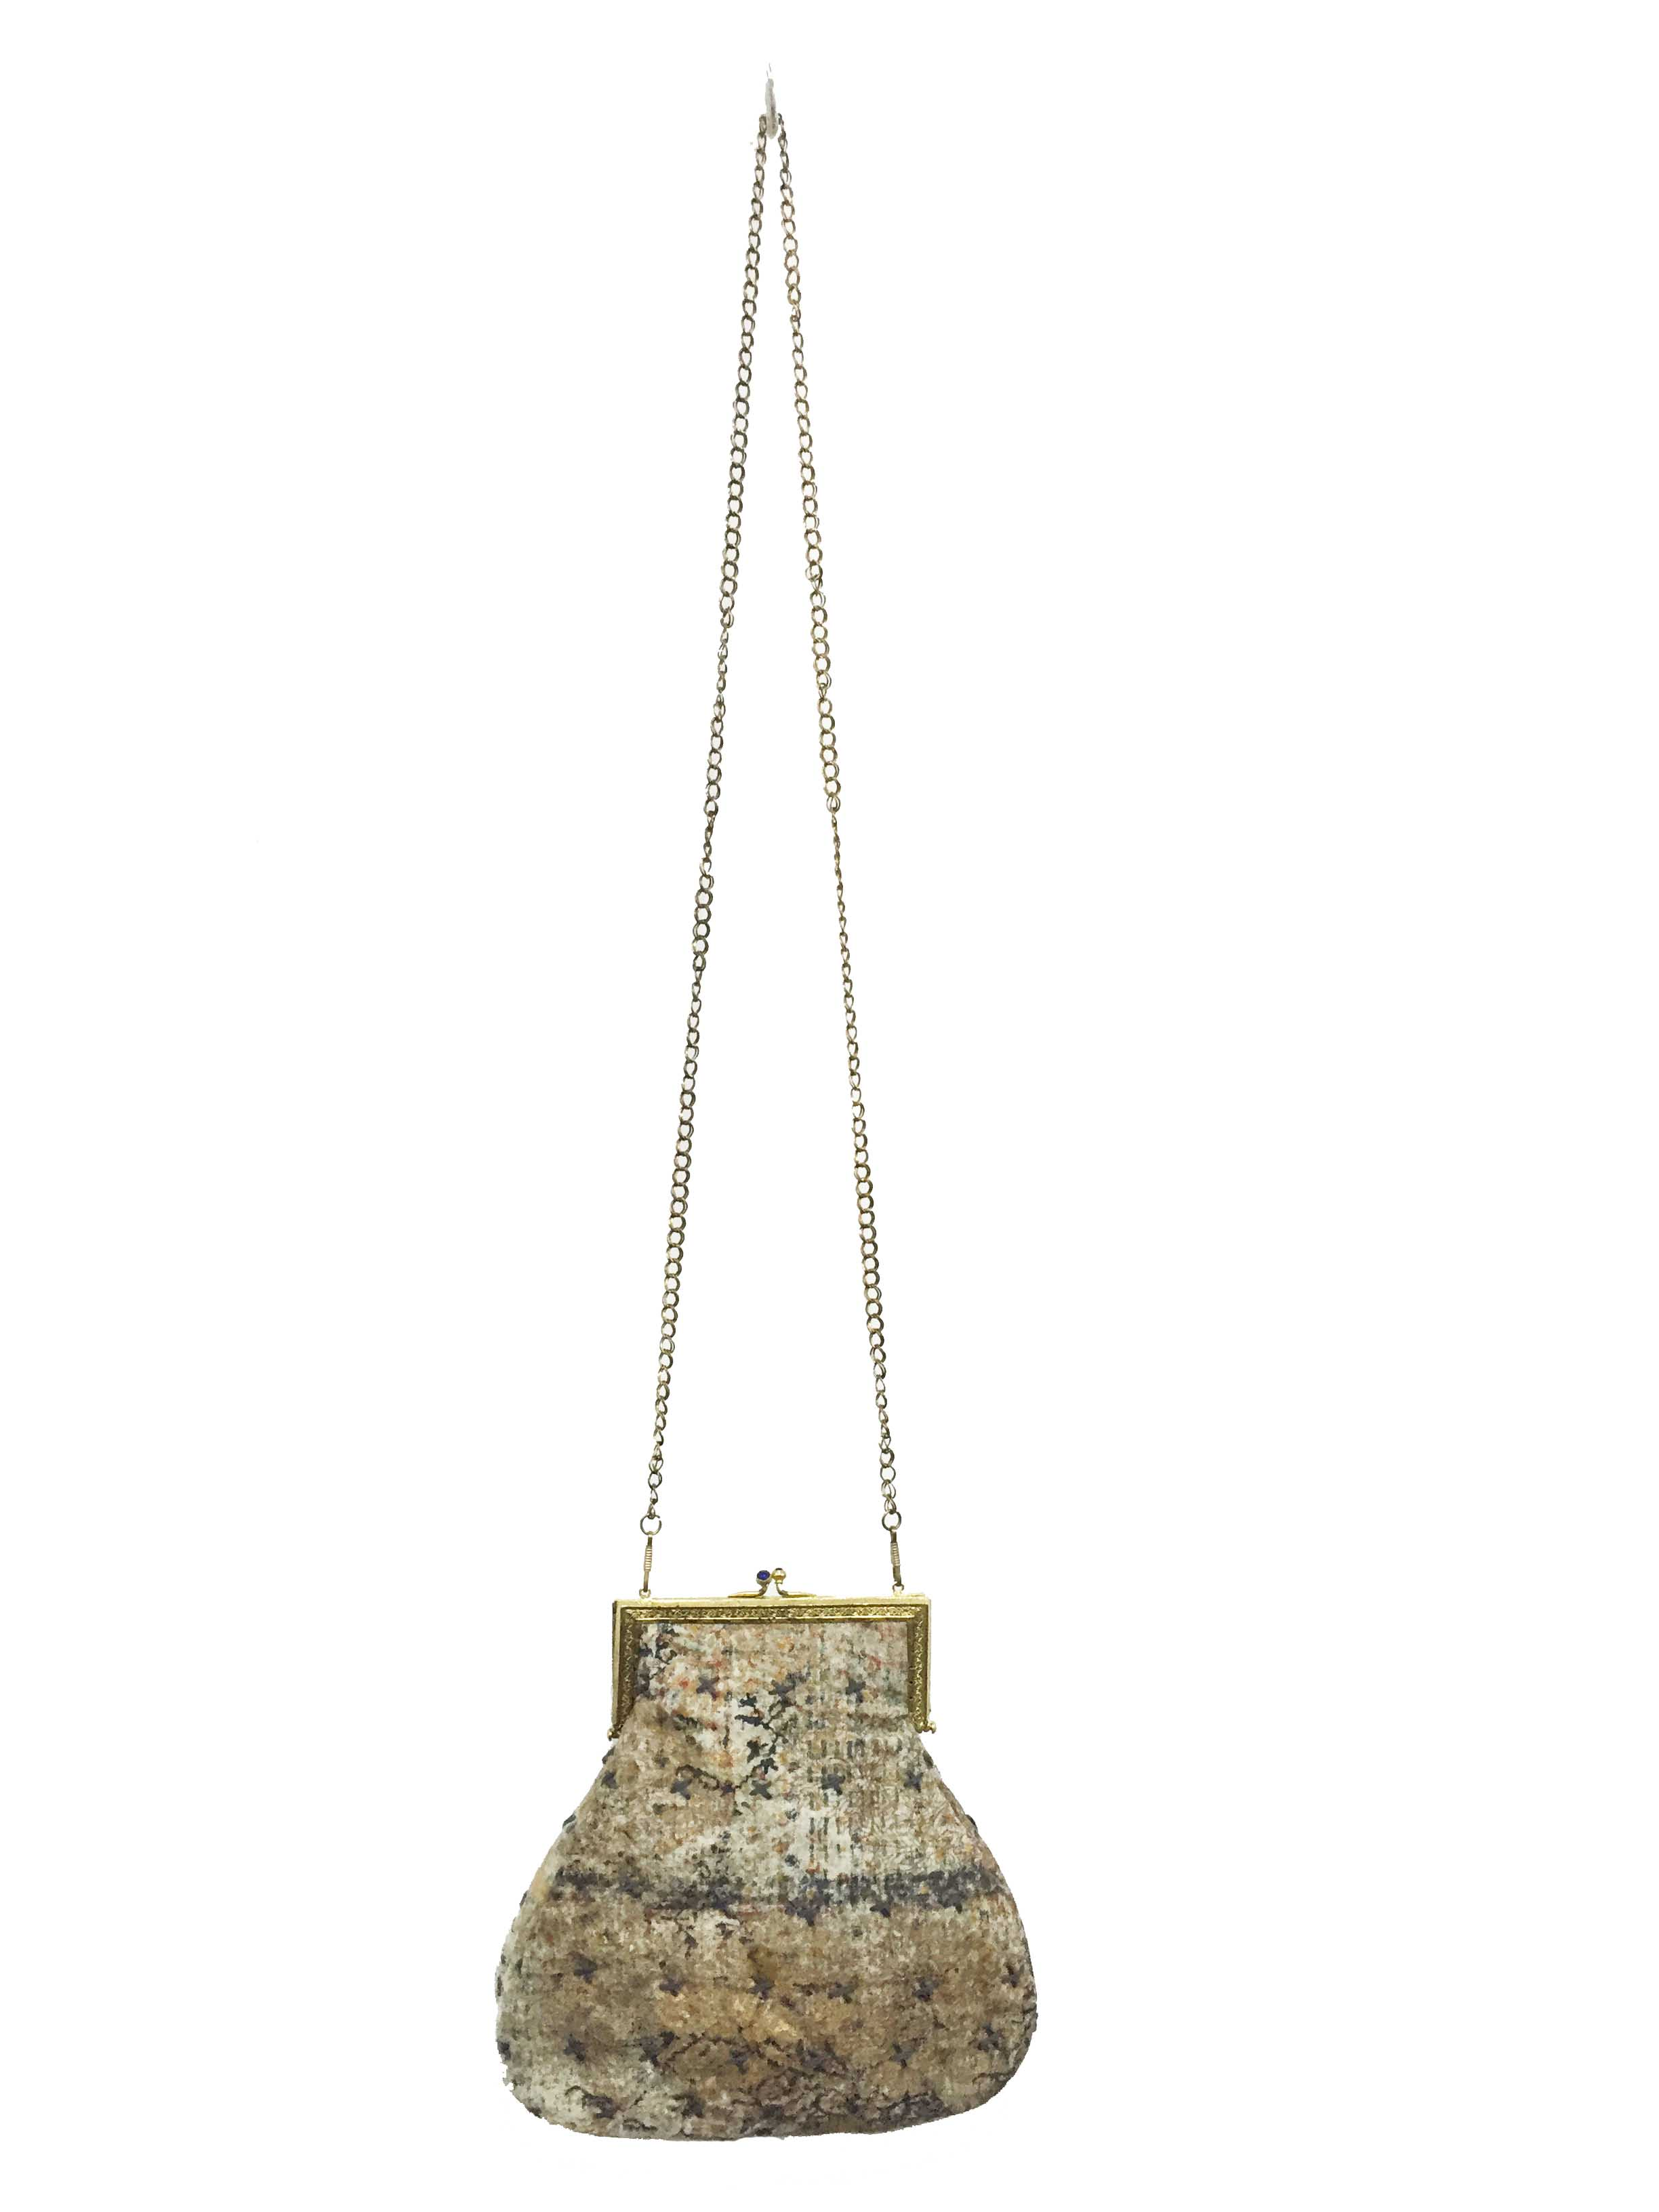 The Golden Jungle At Twilight  The golden jungle bag has been hand painted using shades and textures of blue with floral golden patterns. Specs of accent colours can be observed from piece to piece just like the unpredictability one faces when roaming in a forest under moonlight.